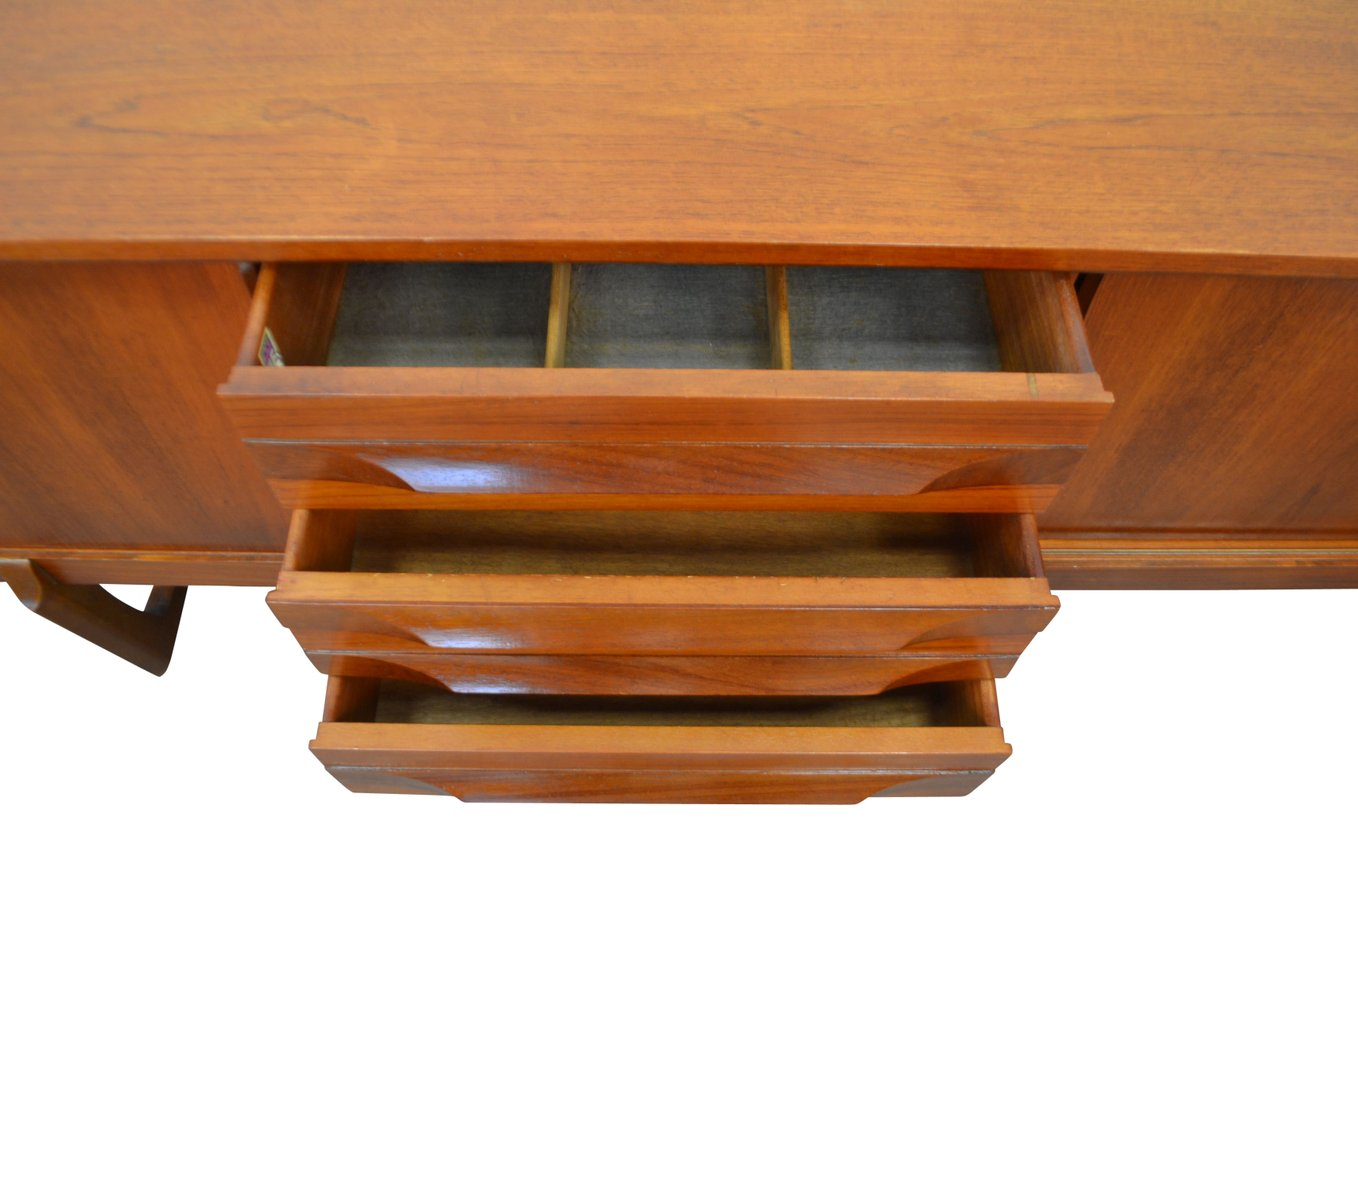 modern sideboard rules with Mid Century Modern Teak Sideboard From Elliots 1 on Media Center Design Ideas Living Room also Round 9 Feature Match Dave Williams Usa Vs Mike Pustilnik Usa 2015 as well Mid Century Modern Italian Sideboard 1 as well 474989091931804613 further Mid Century Modern Sideboard From Paul Mccobb 1960s.